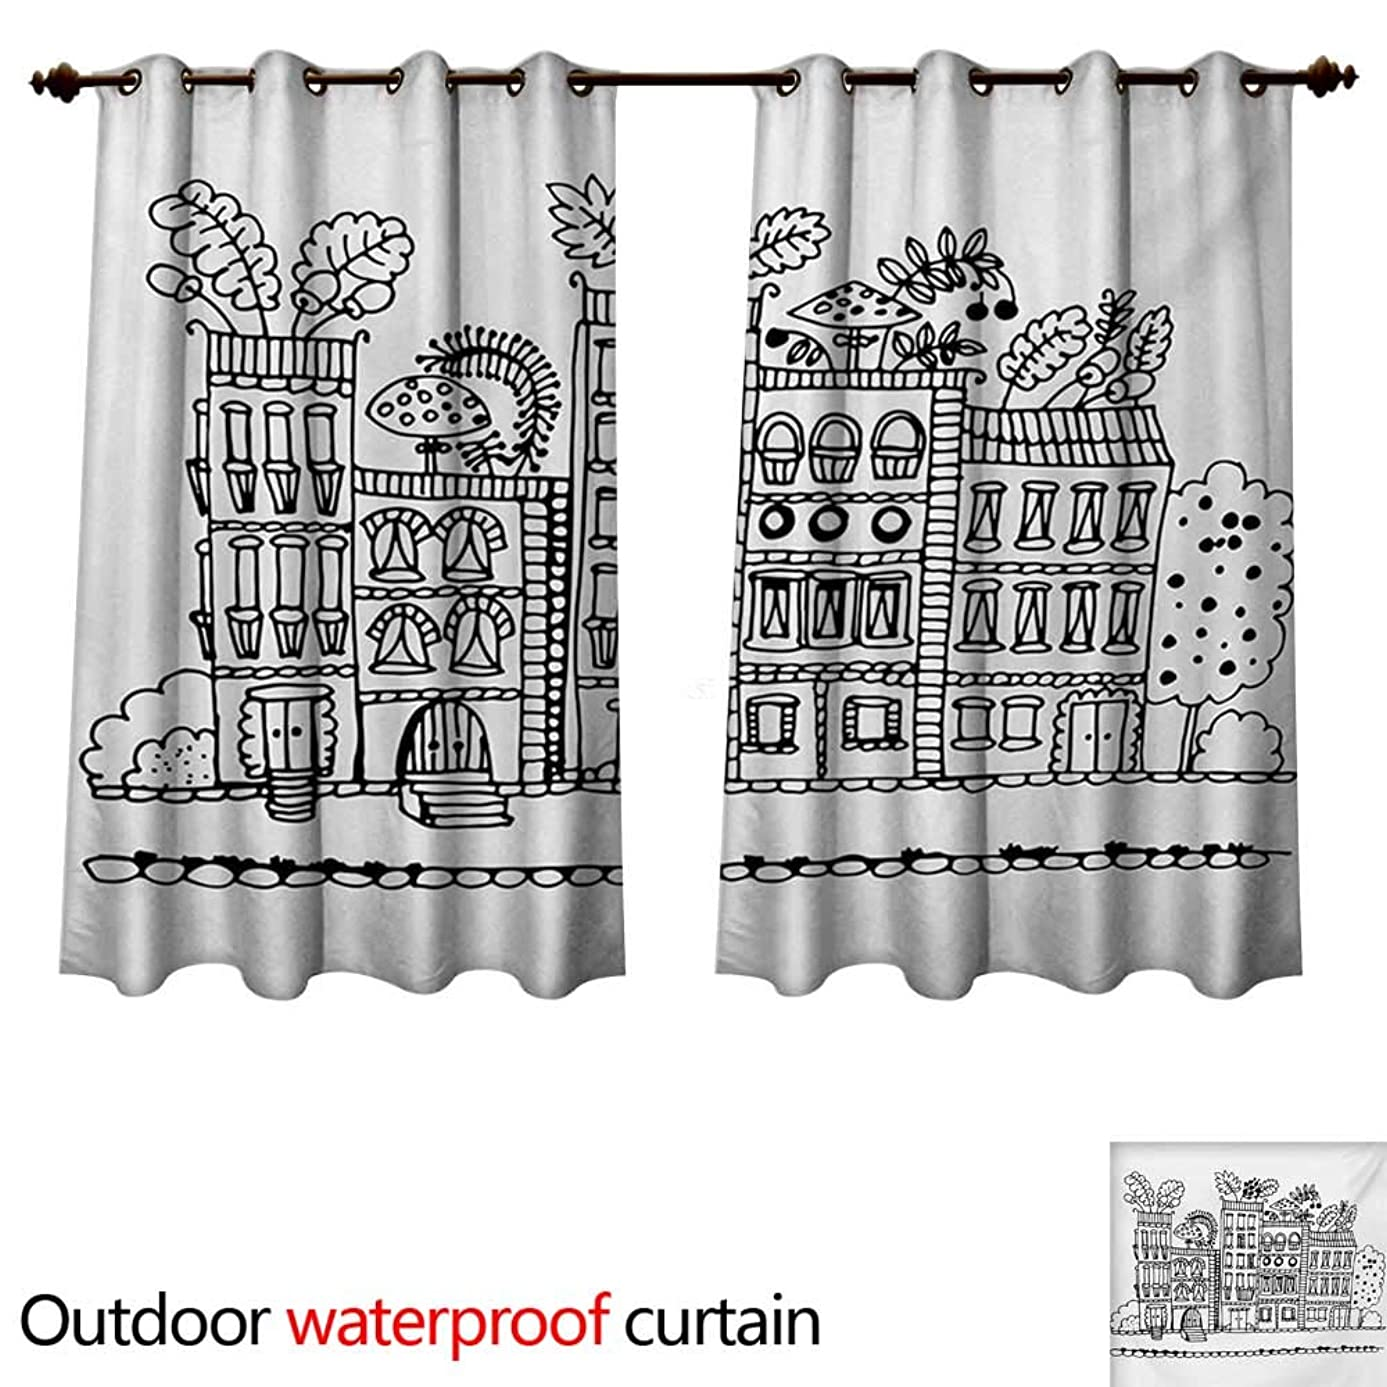 WilliamsDecor Modern 0utdoor Curtains for Patio Waterproof Sketchy Hand Drawn Cartoon Style House Apartment Trees Kids Nursery Theme Print W55 x L72(140cm x 183cm)